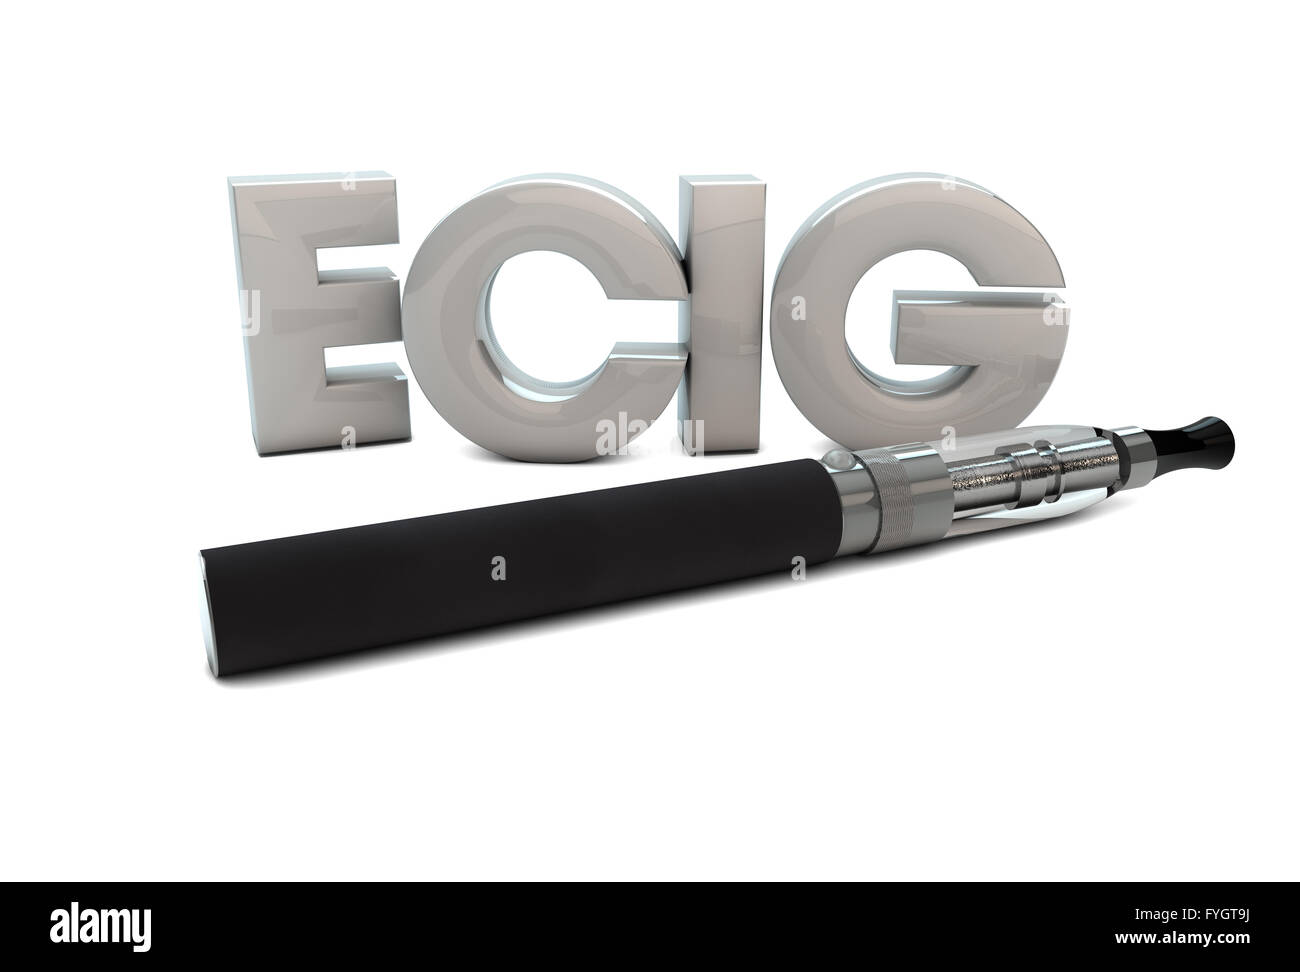 render of an electronic cigarette and the text ecig - Stock Image